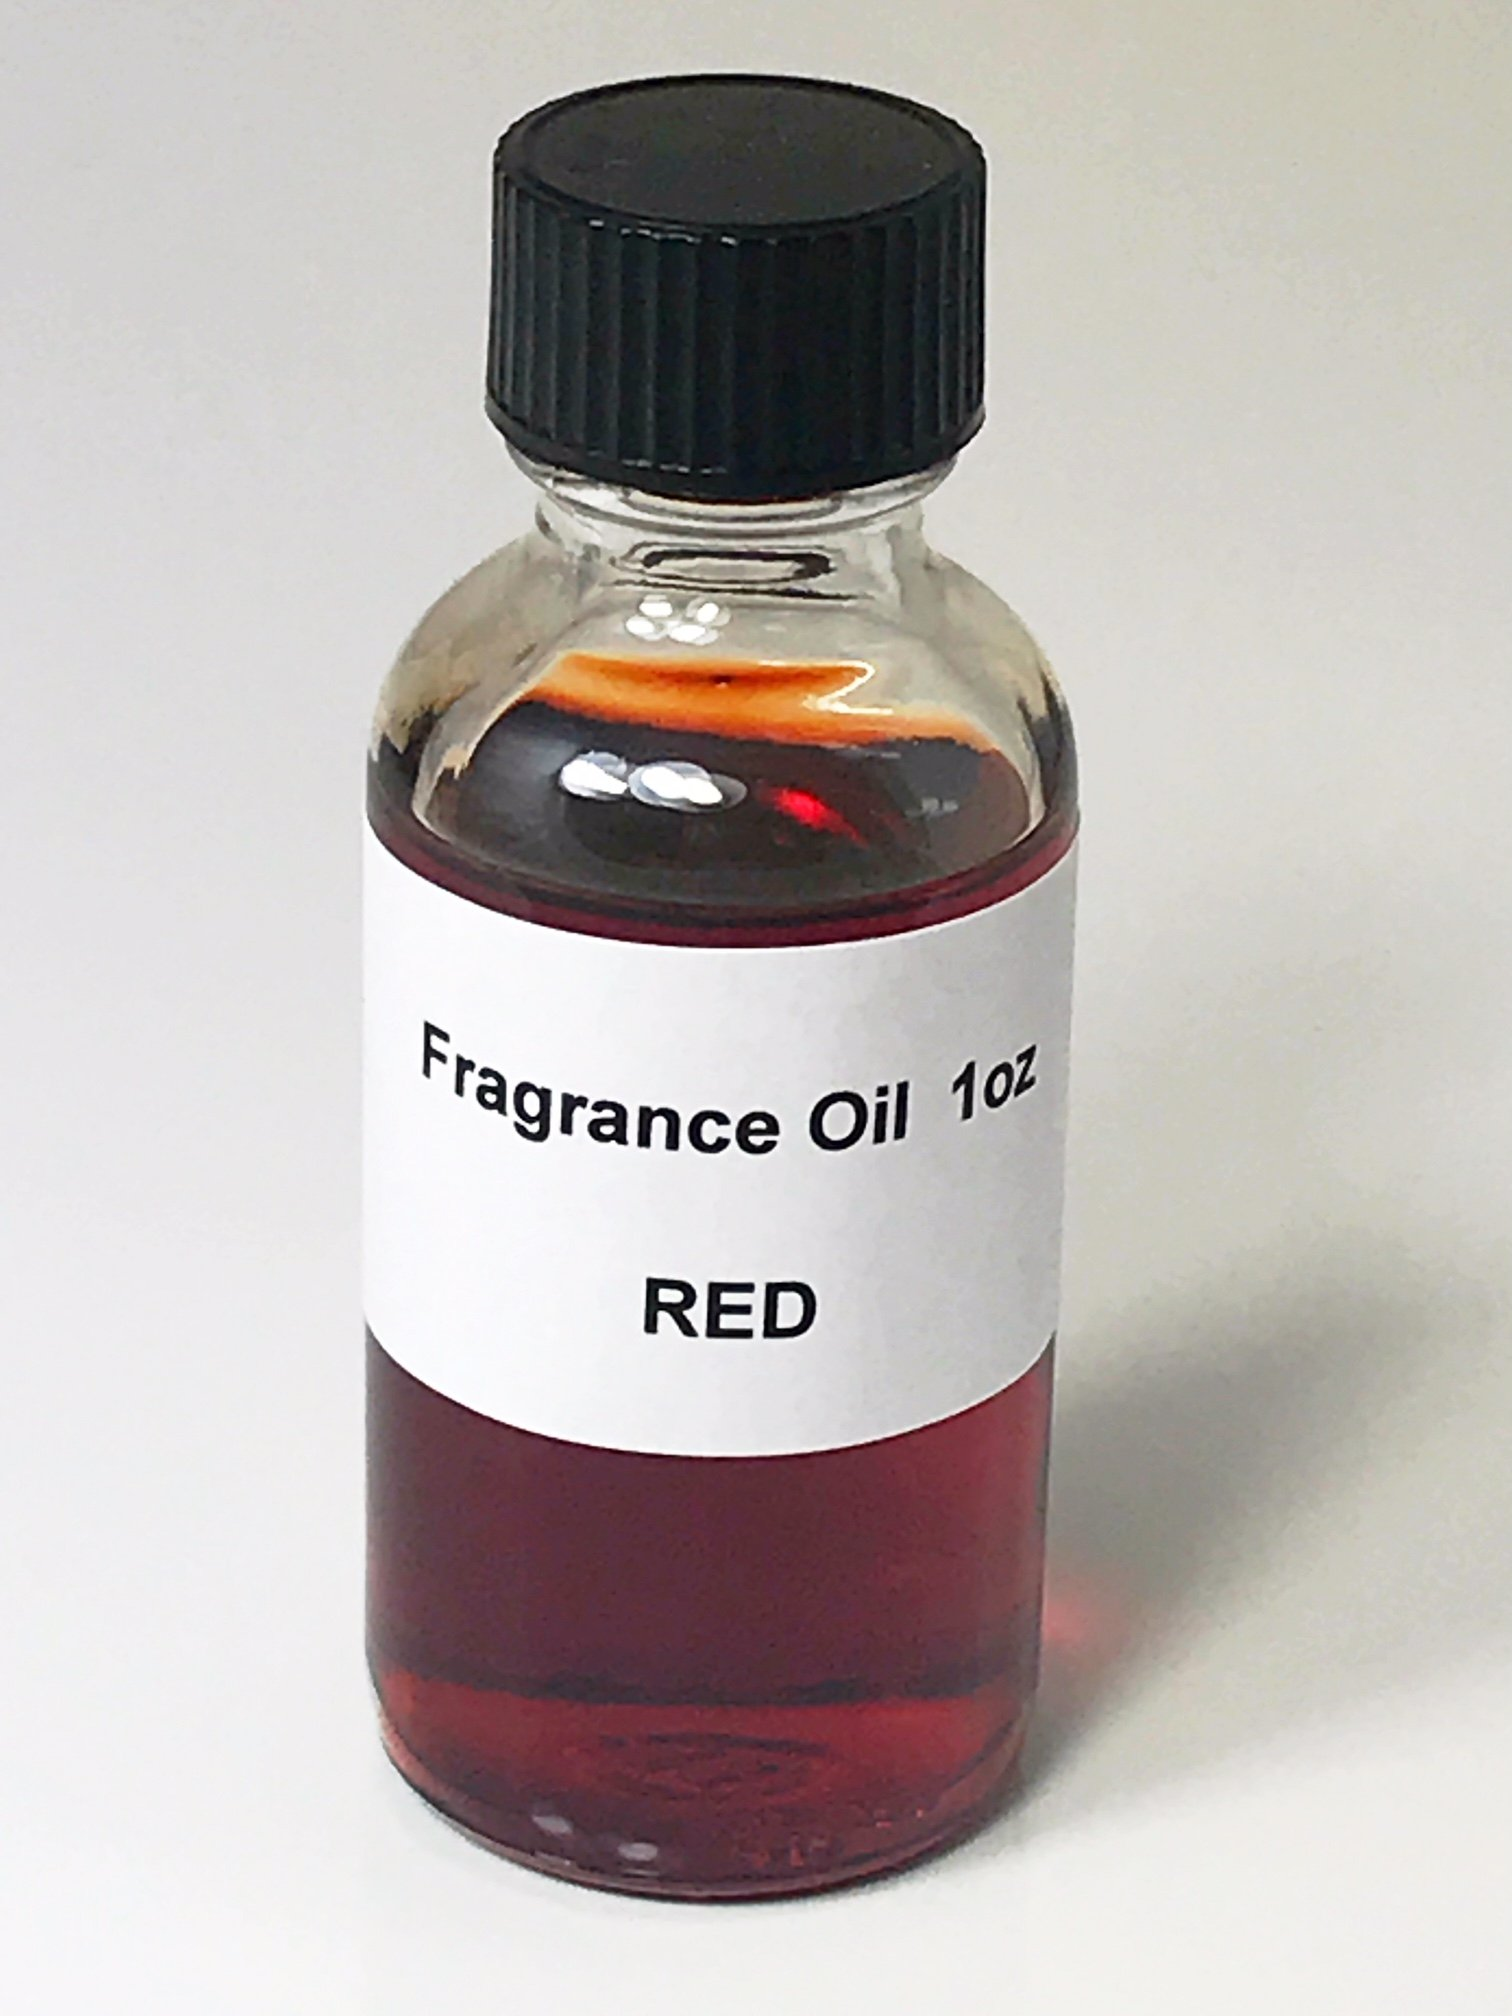 Red Fragrance Oil 1oz Perfume Type Body Oil Perfume Oil Alcohol Free Made in the USA